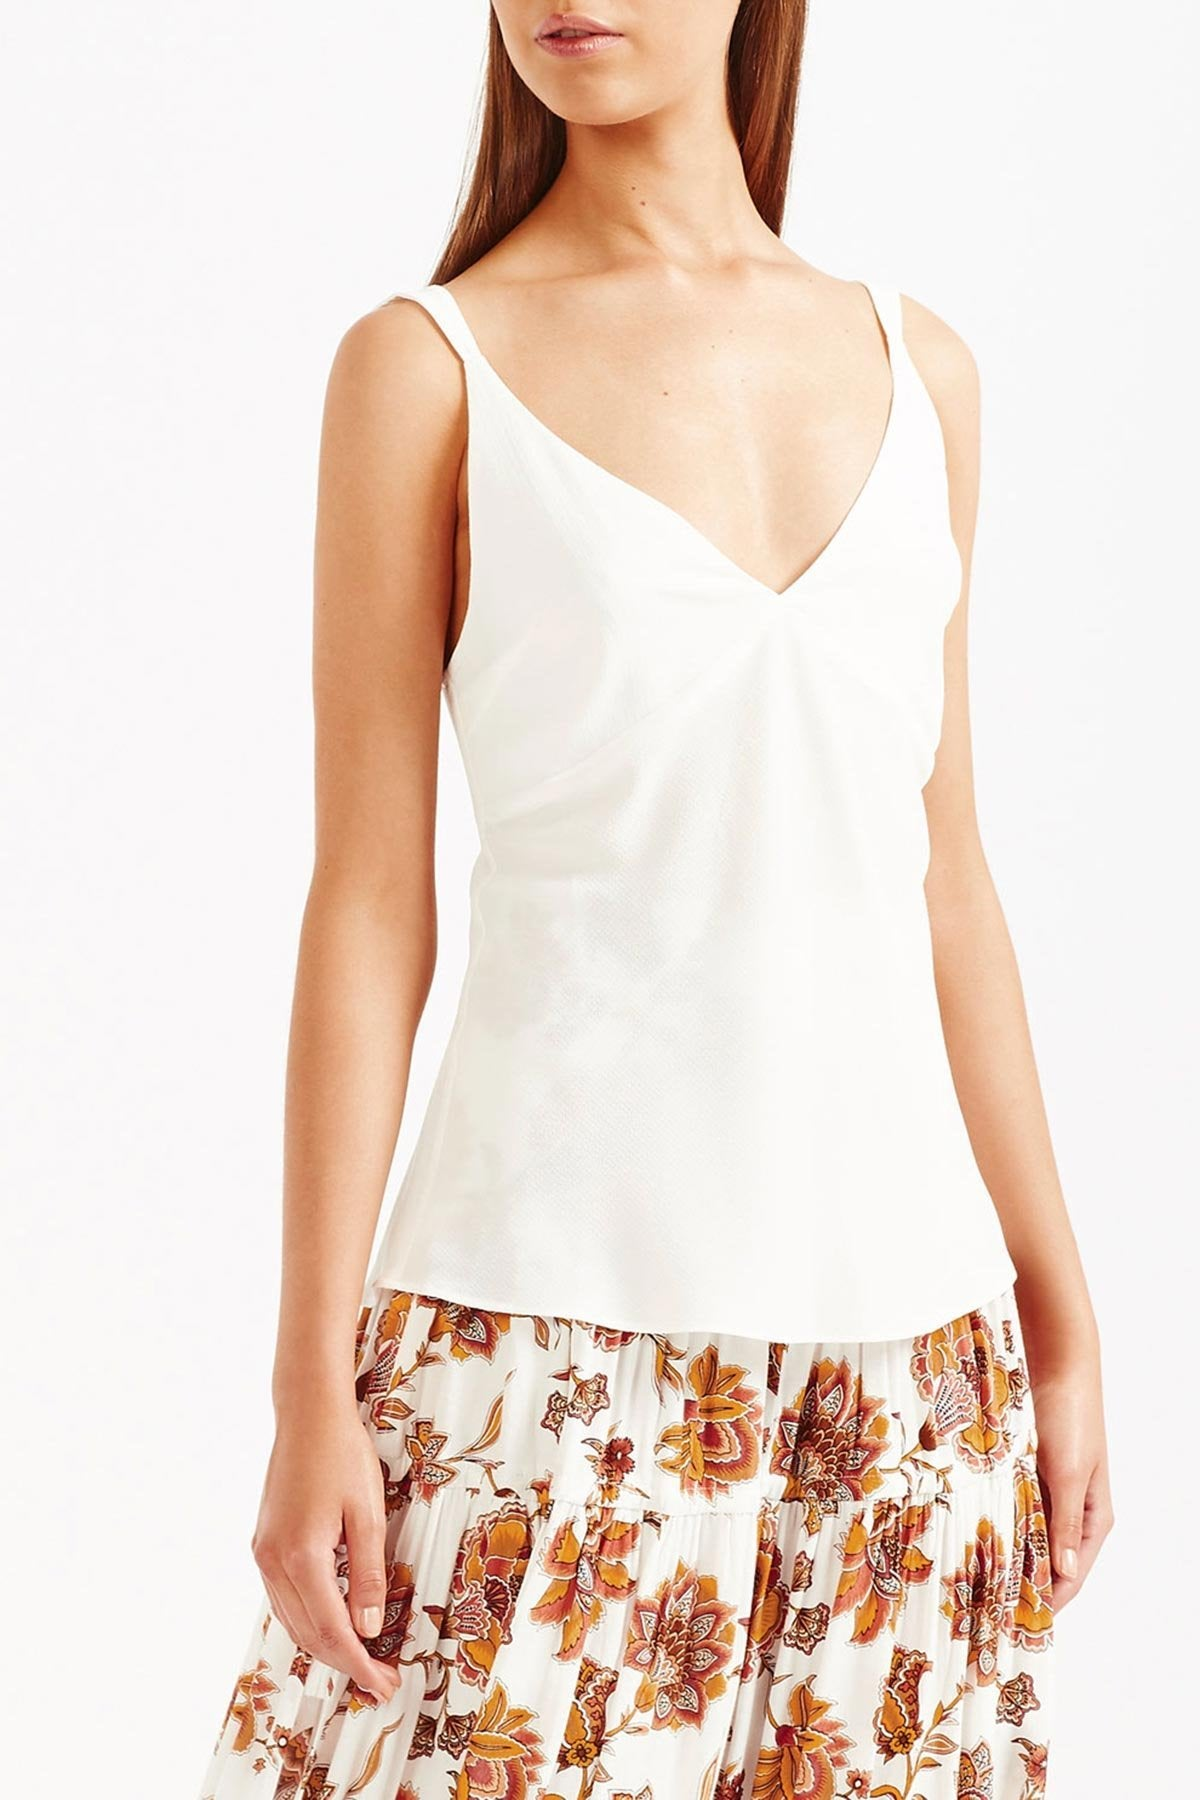 Tigerlily Rena Cami Top - White